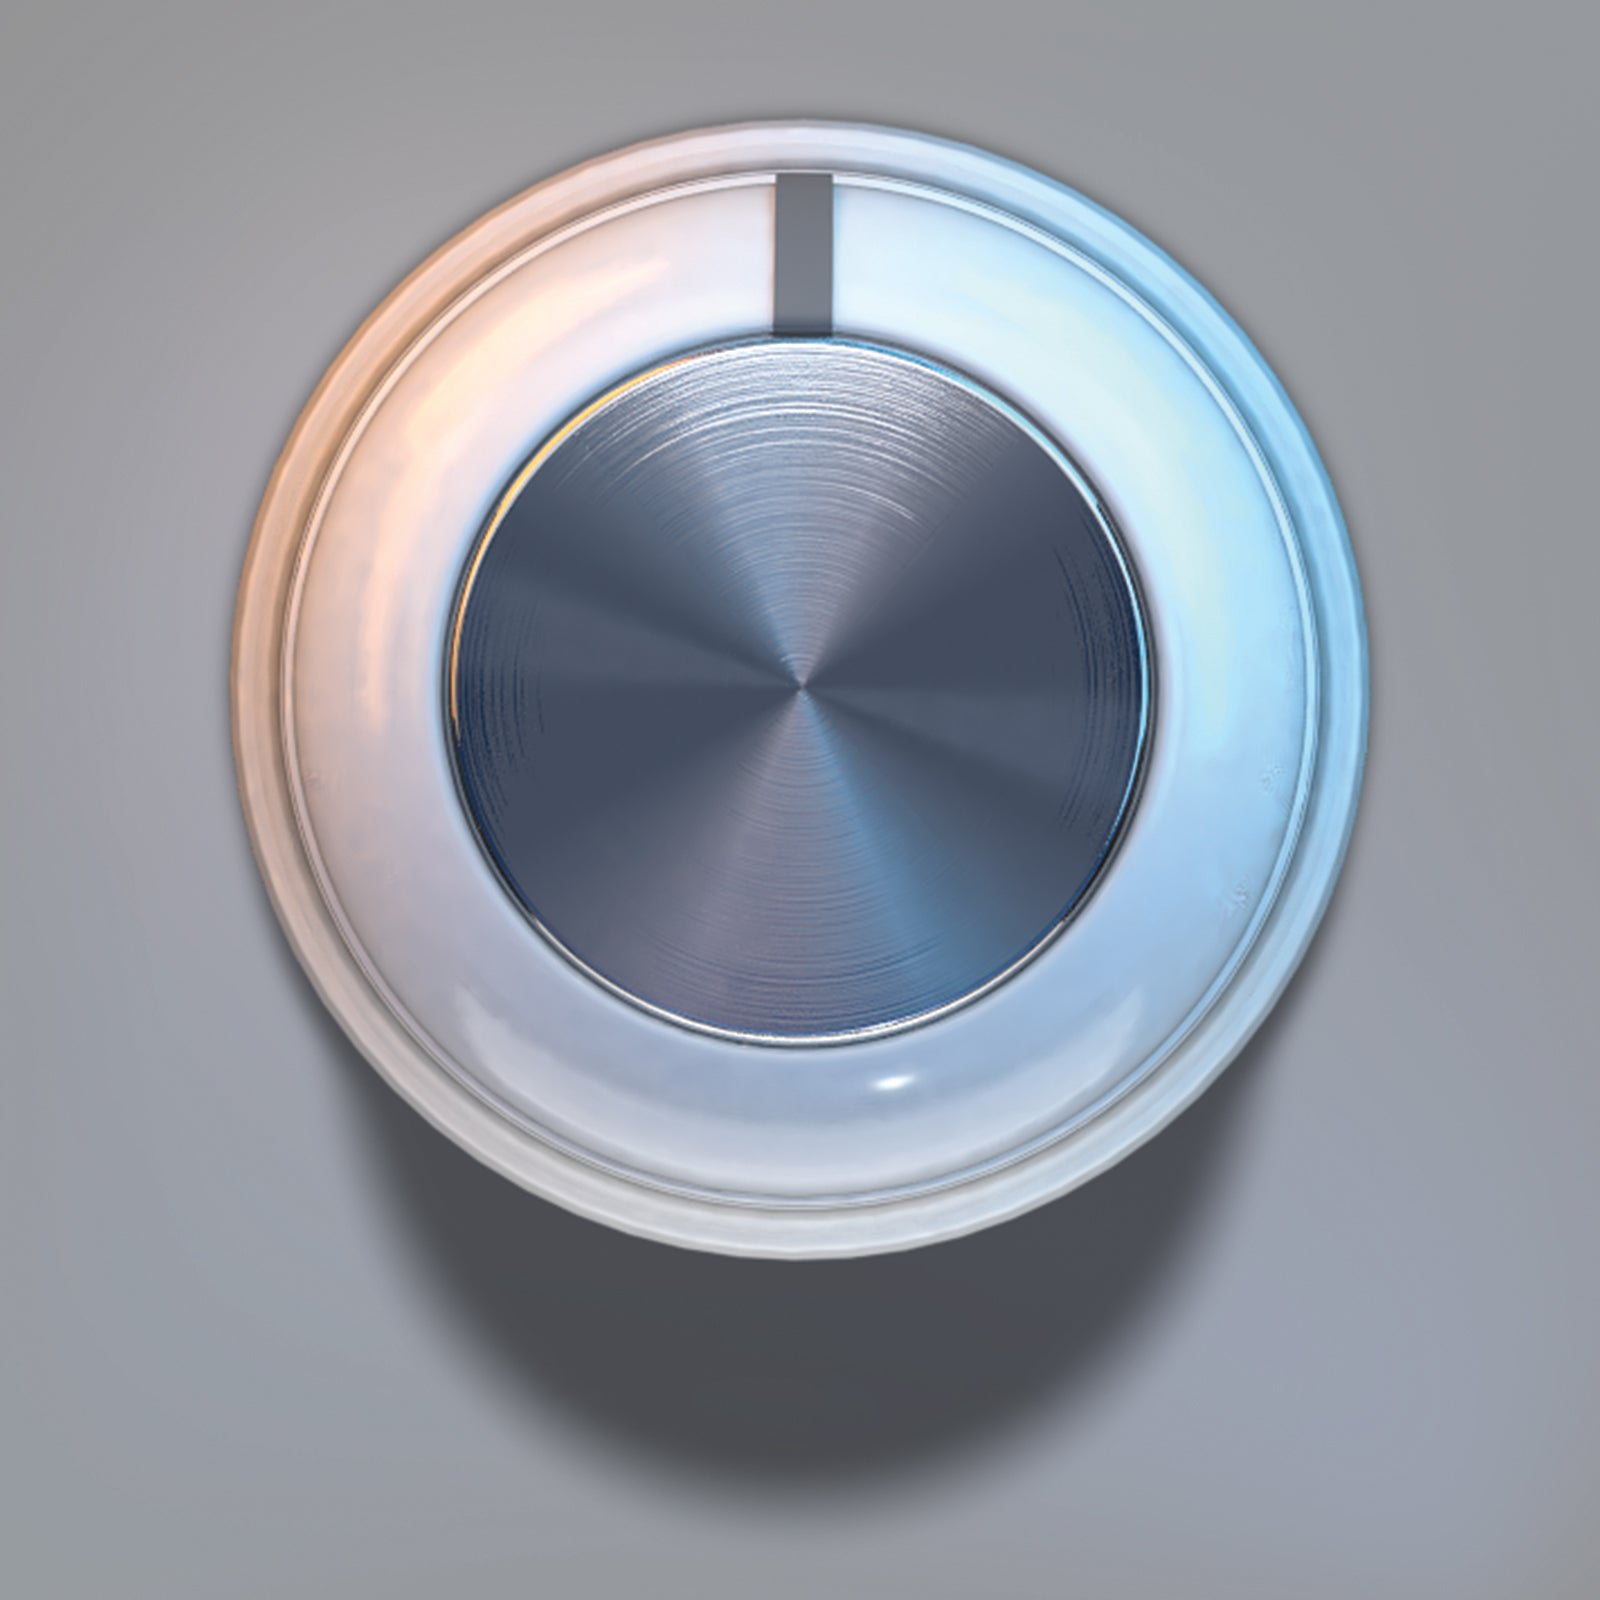 Metal light volume knob 3D